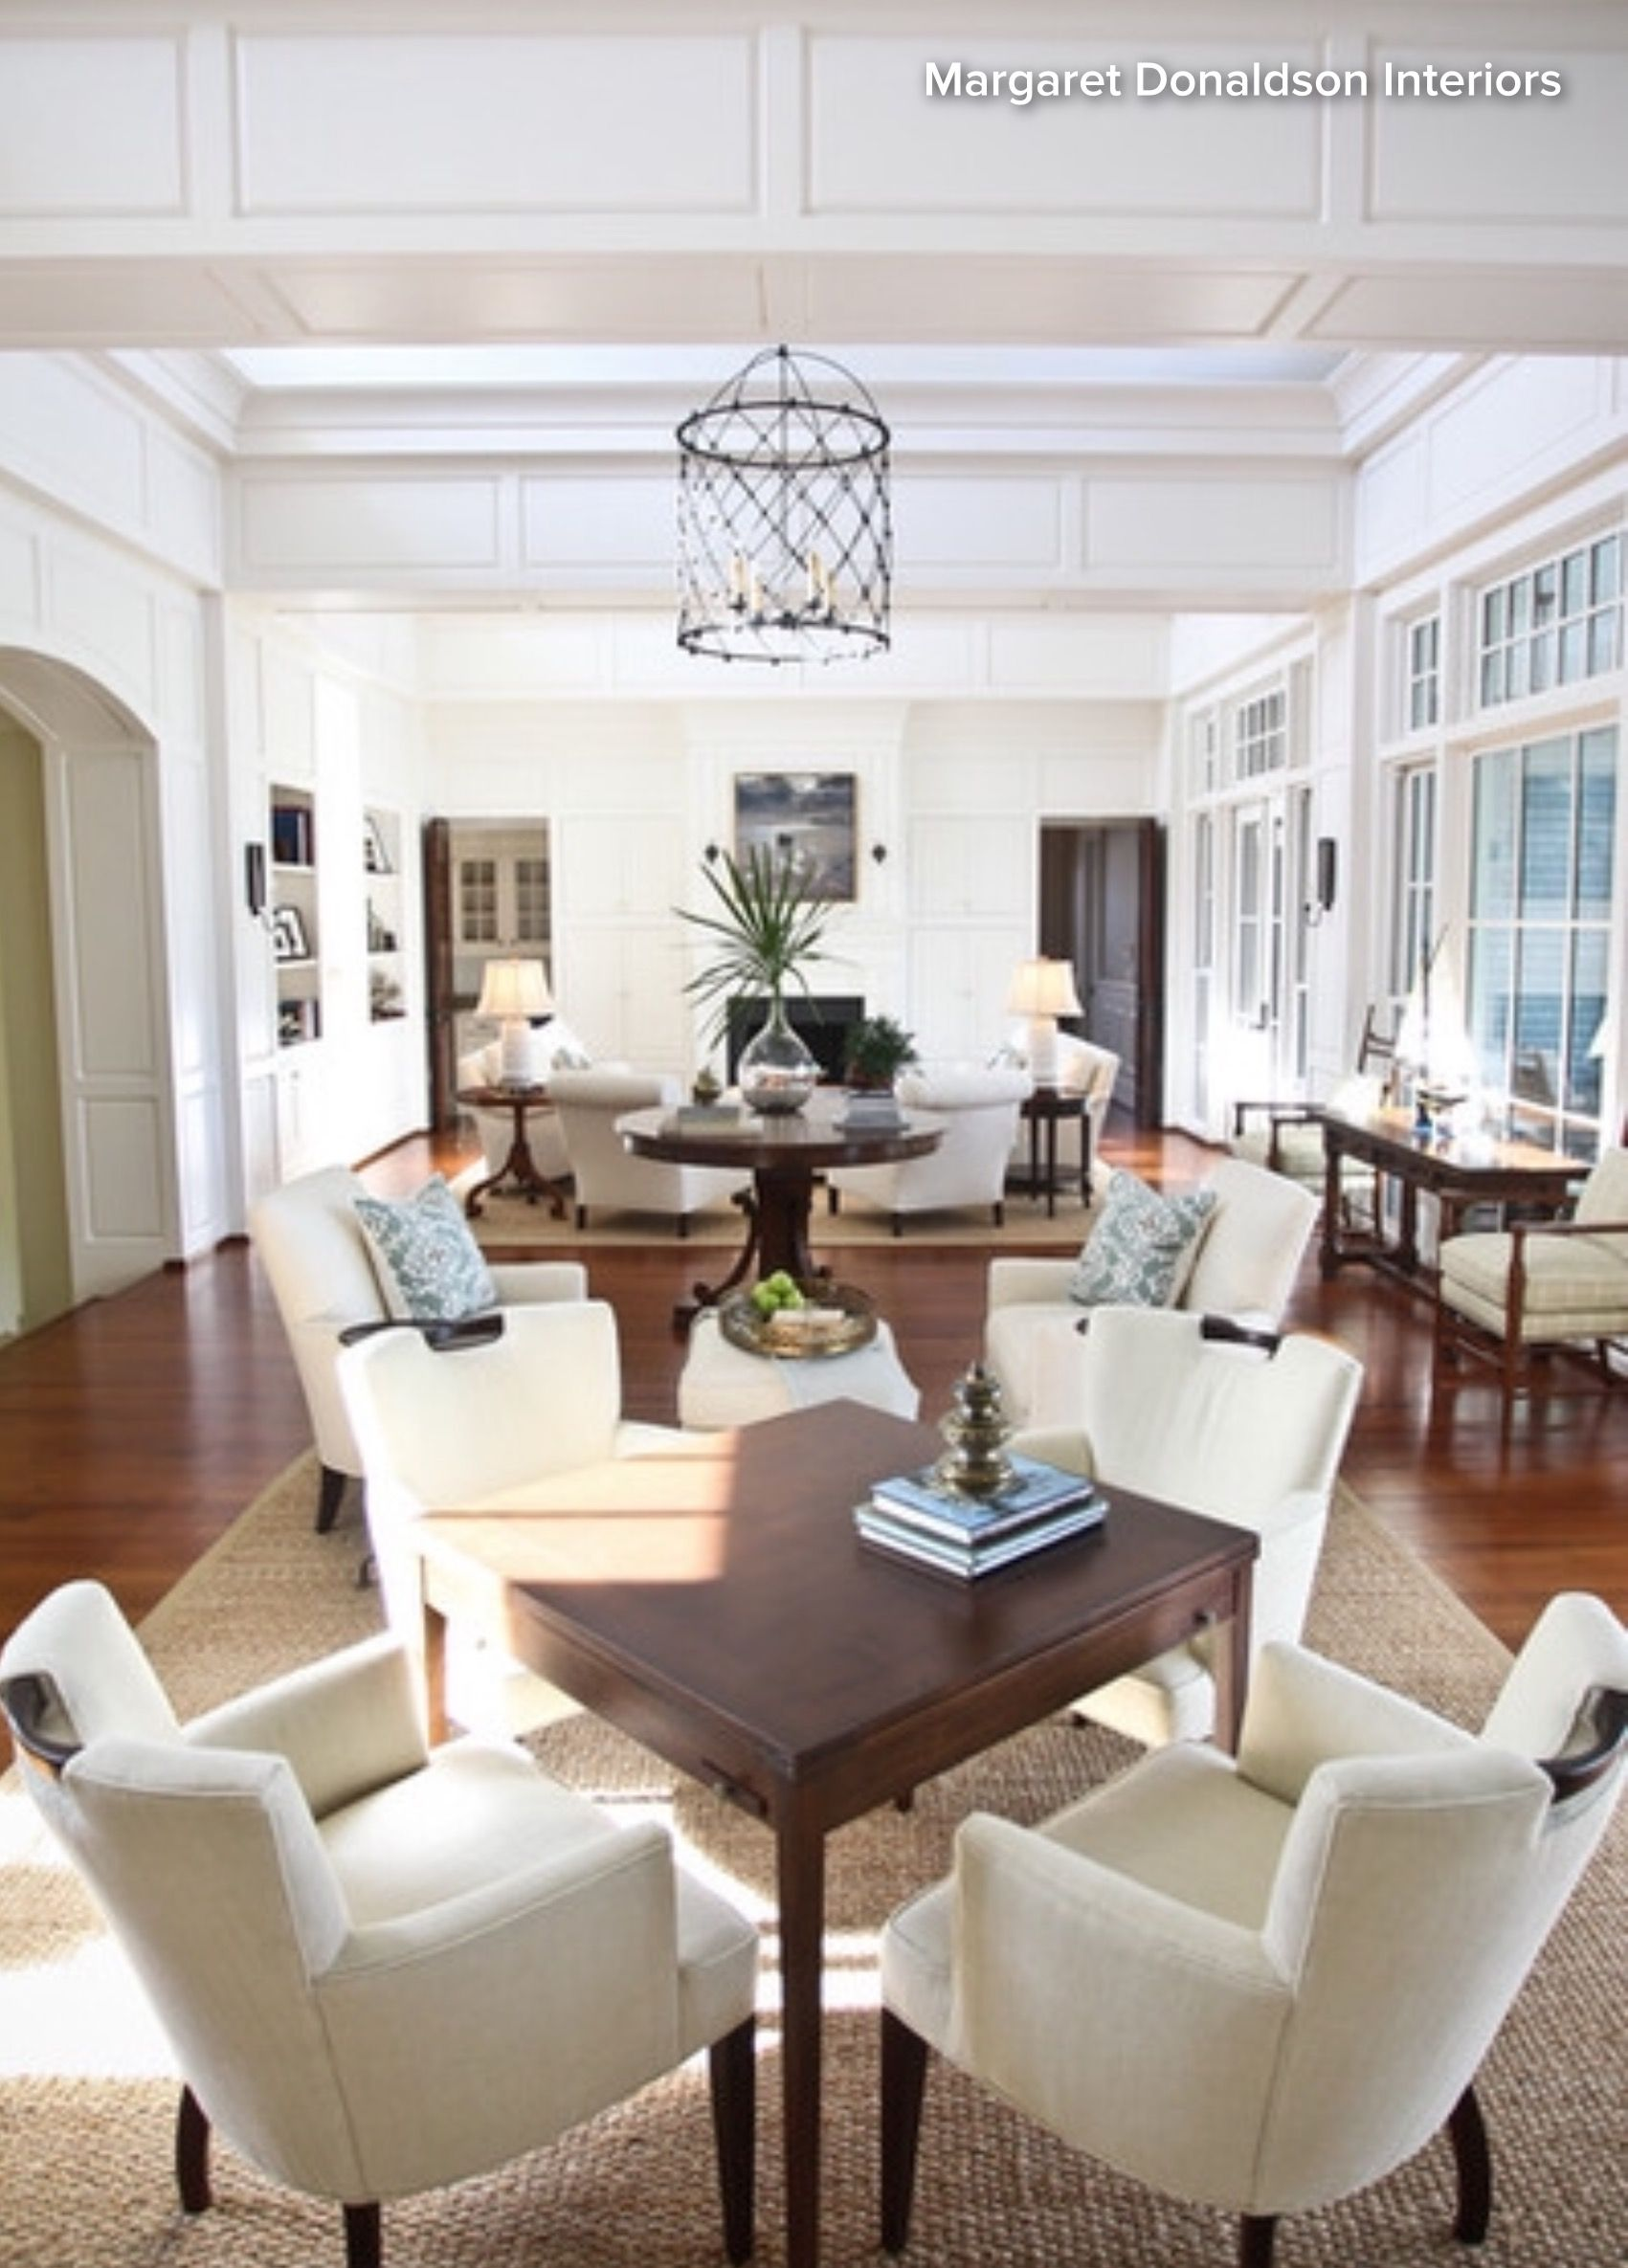 Tips for Styling Large Living Rooms: 8. Designate zones. Identify